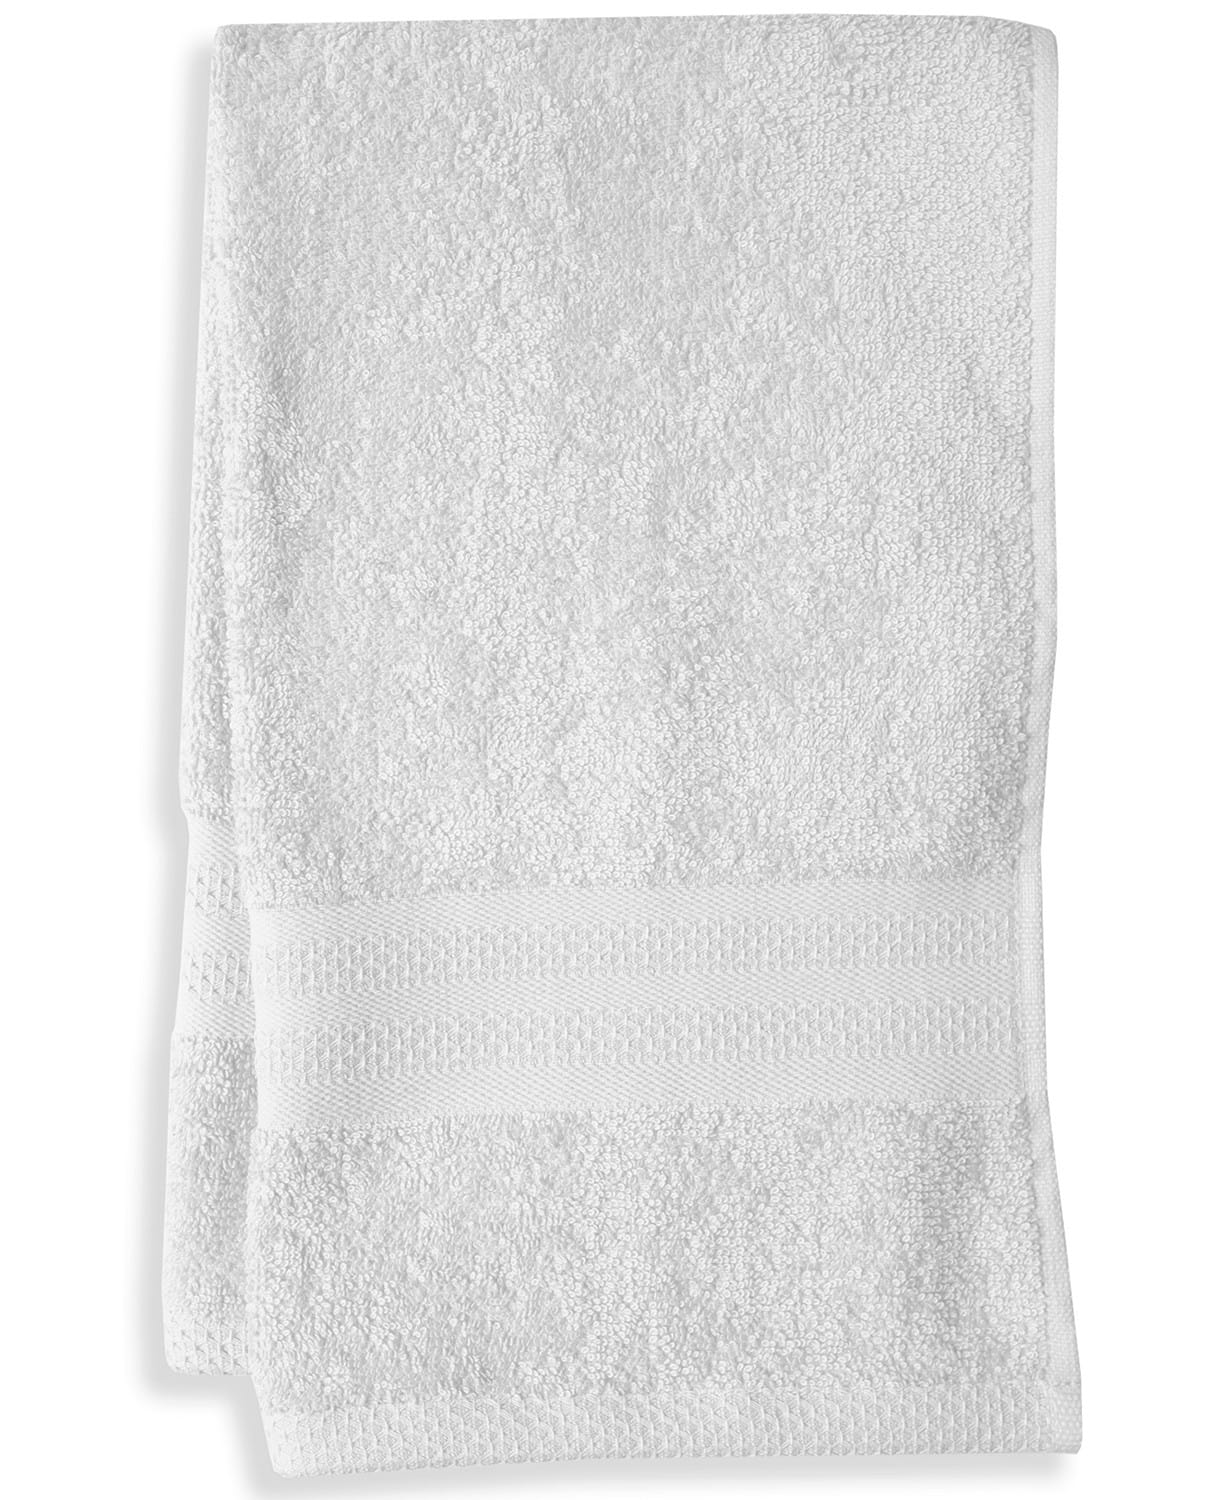 Mainstream International Inc. Cotton Hand Towel (white) $2 + 6% Slickdeals Cashback (PC Req'd) + Free Store Pickup at Macys or F/S on $25+